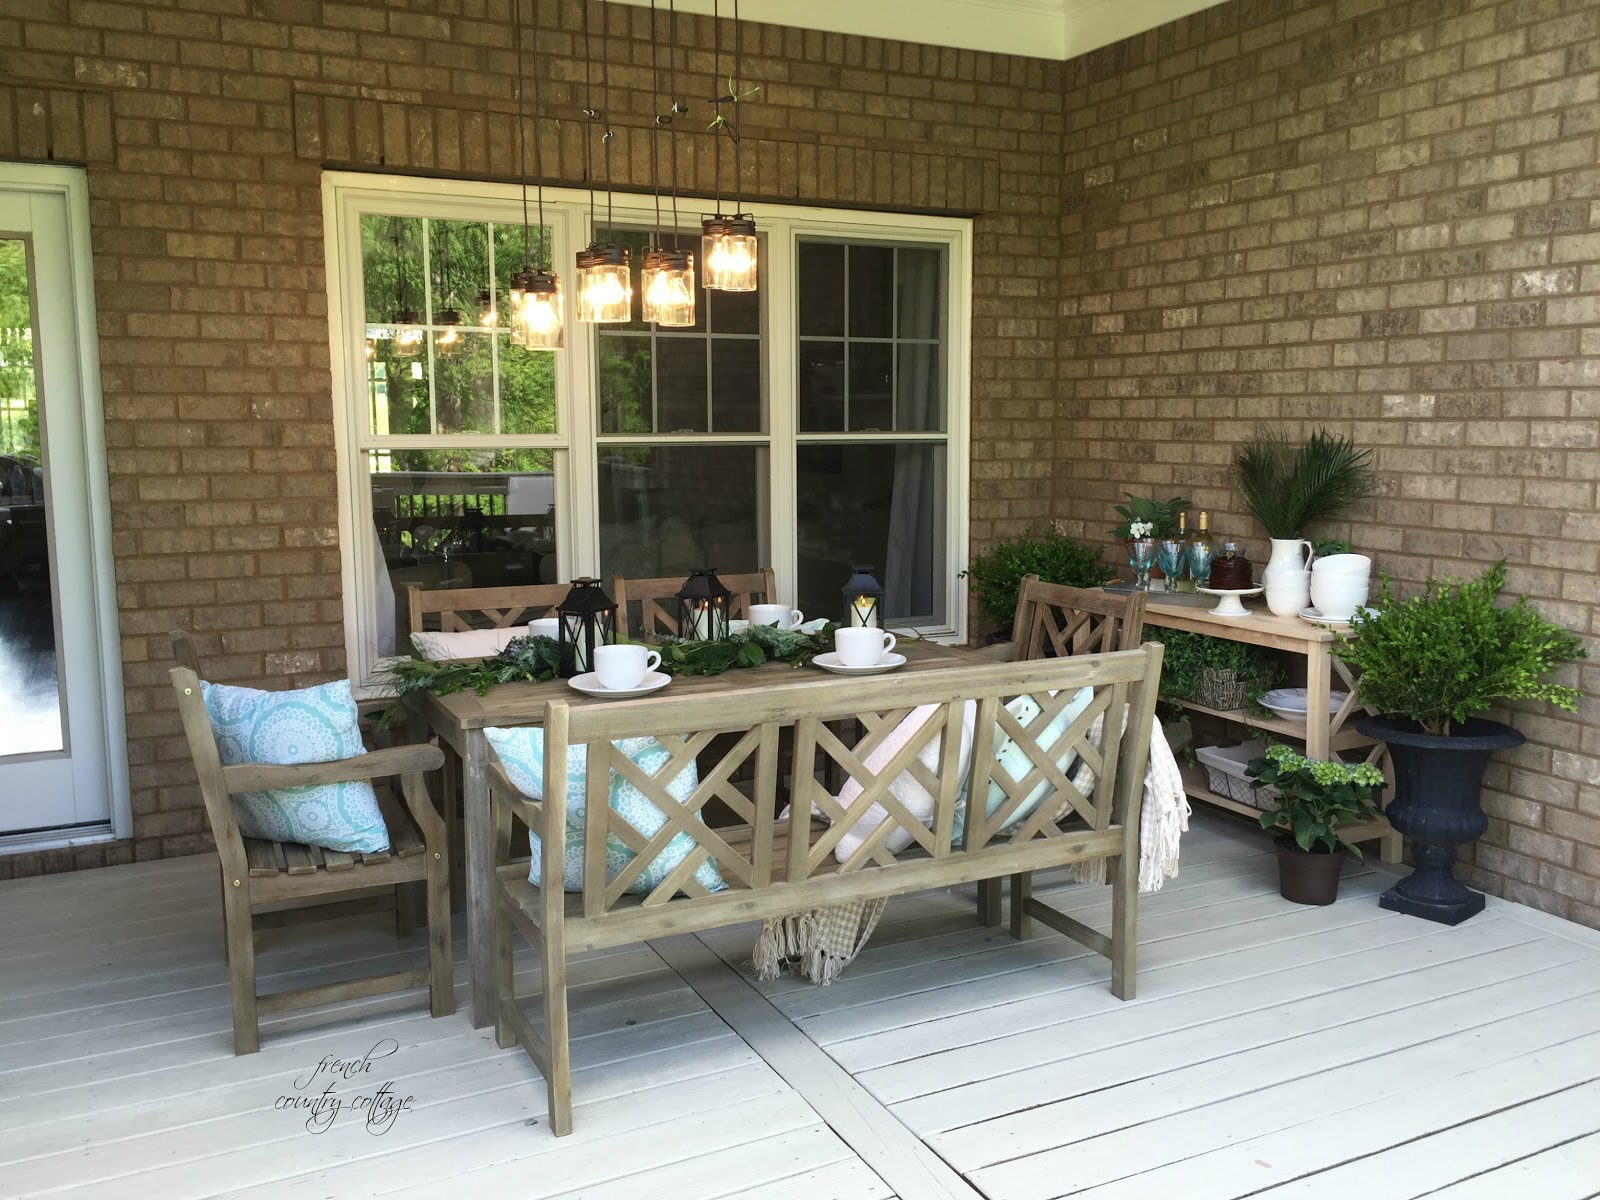 Superb Wood bench at outdoor dining table area